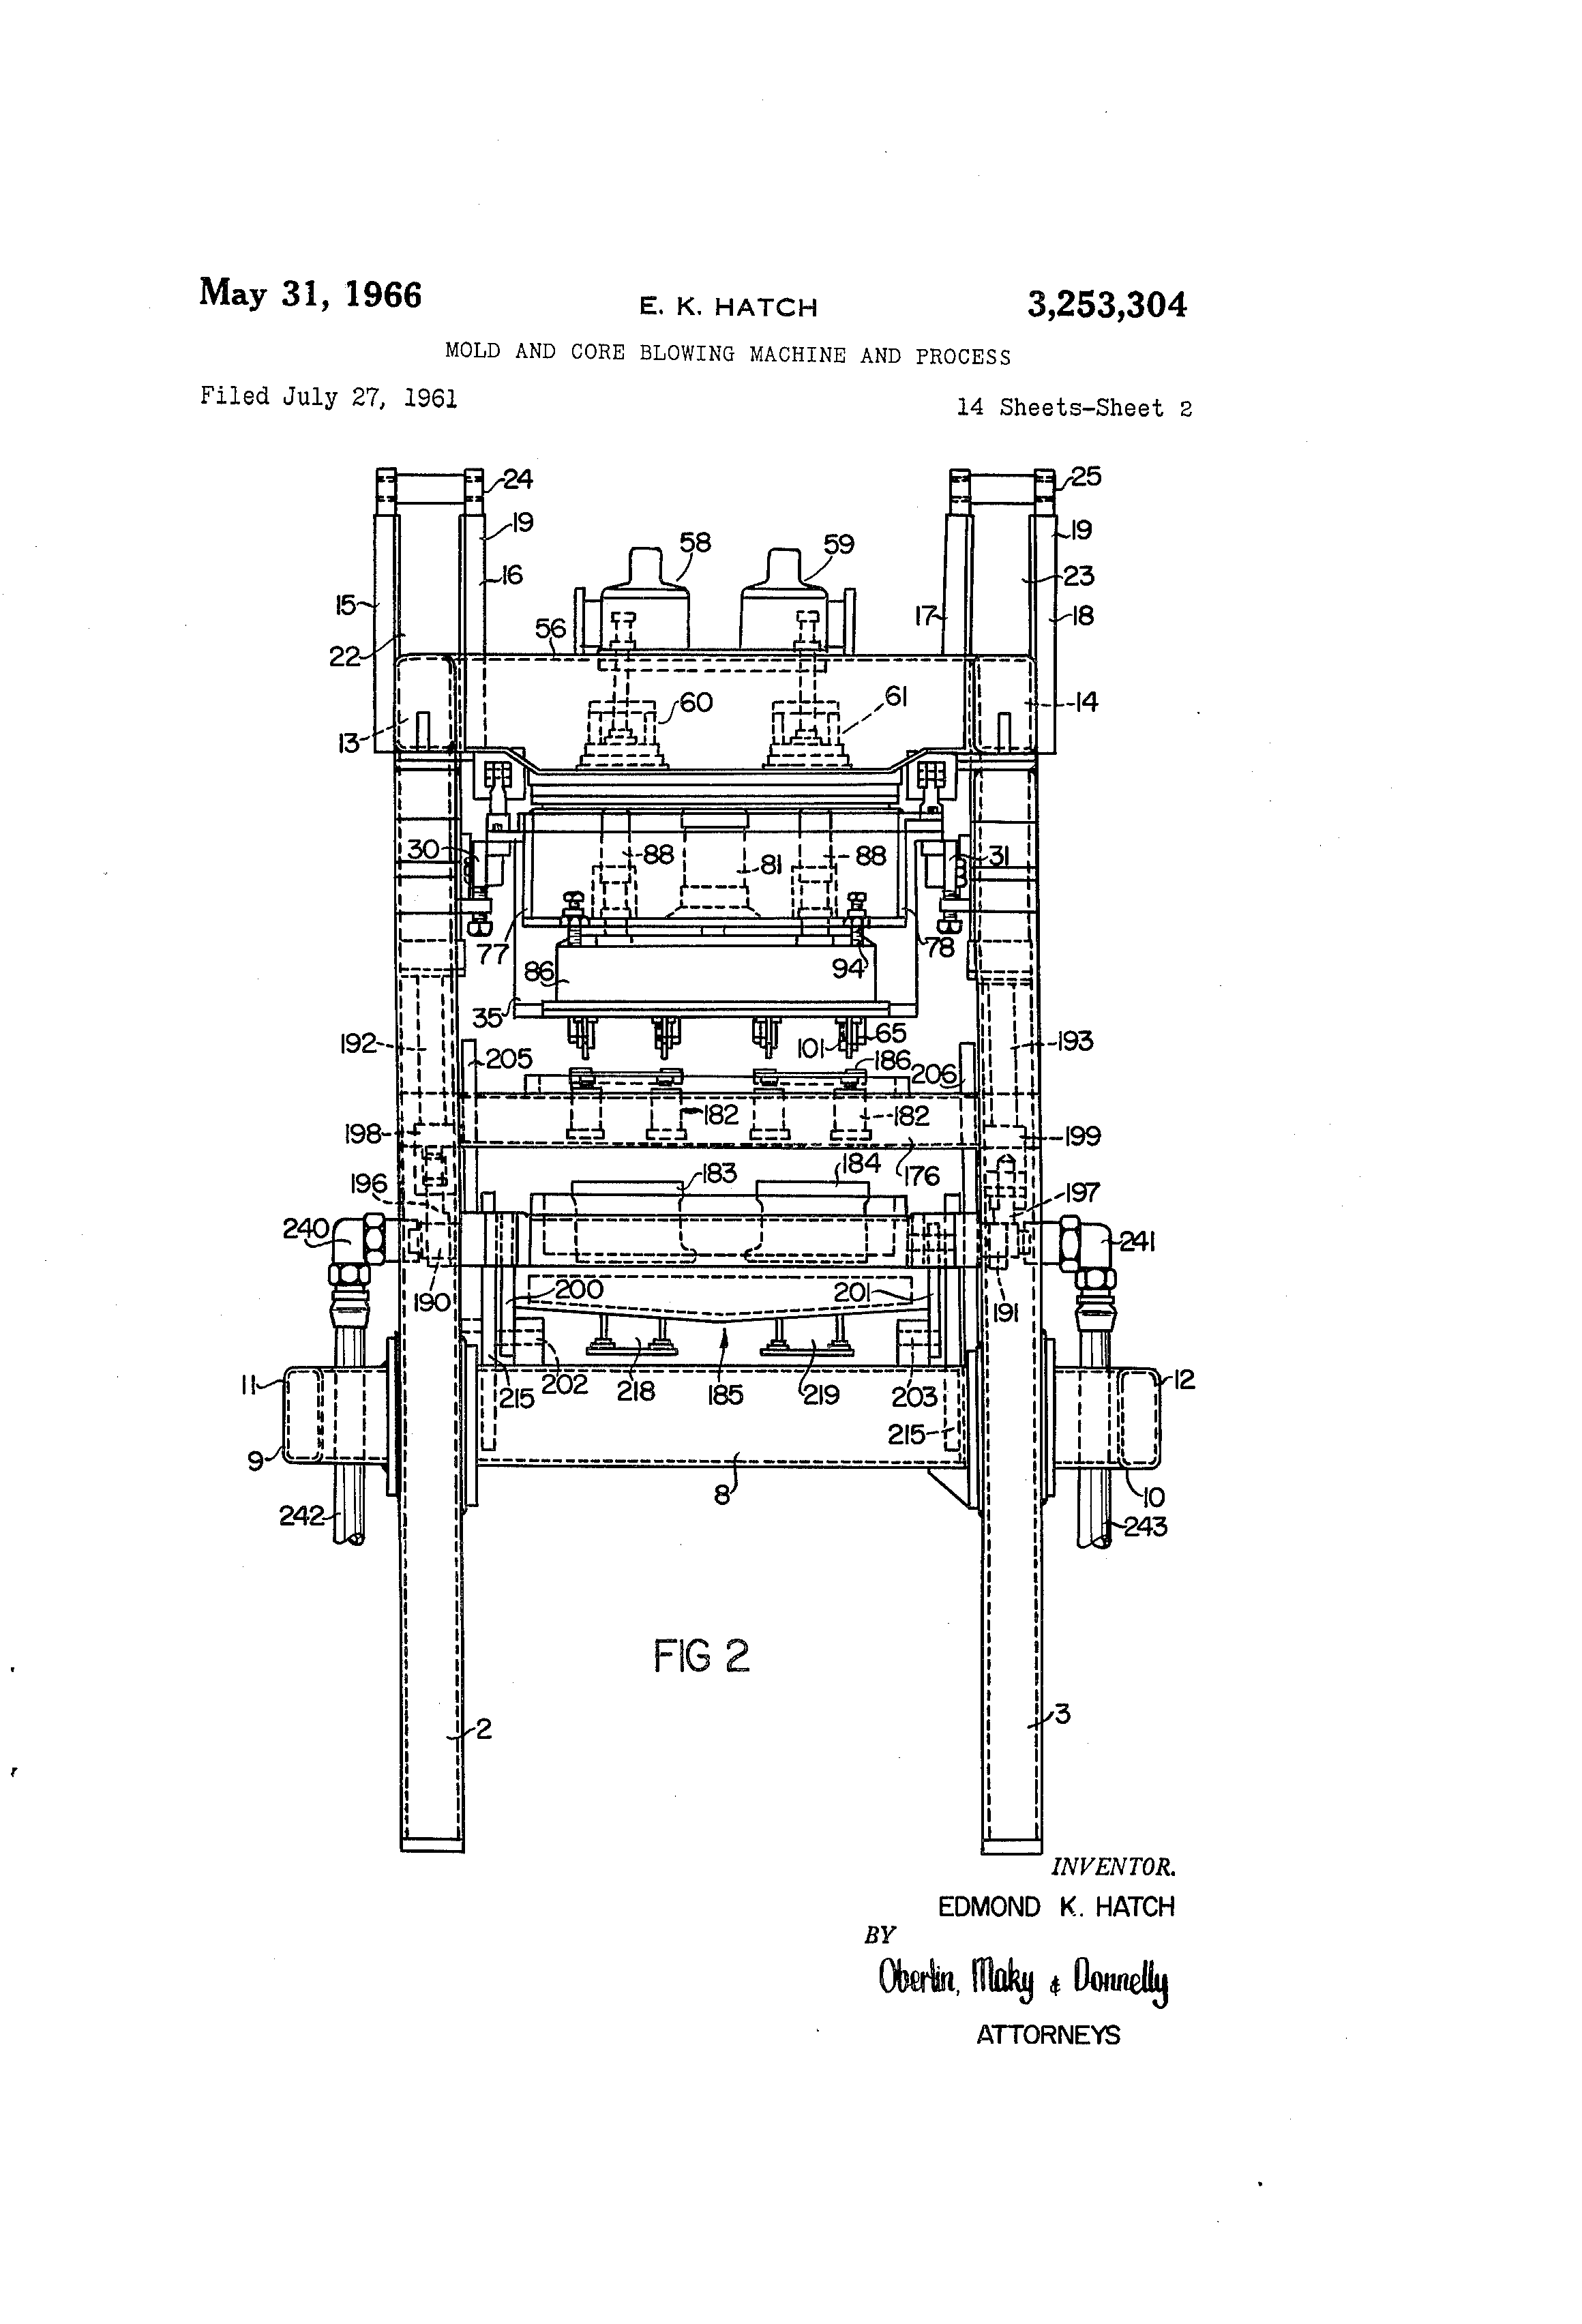 US3253304 1 patent us3253304 mold and core blowing machine and process  at crackthecode.co